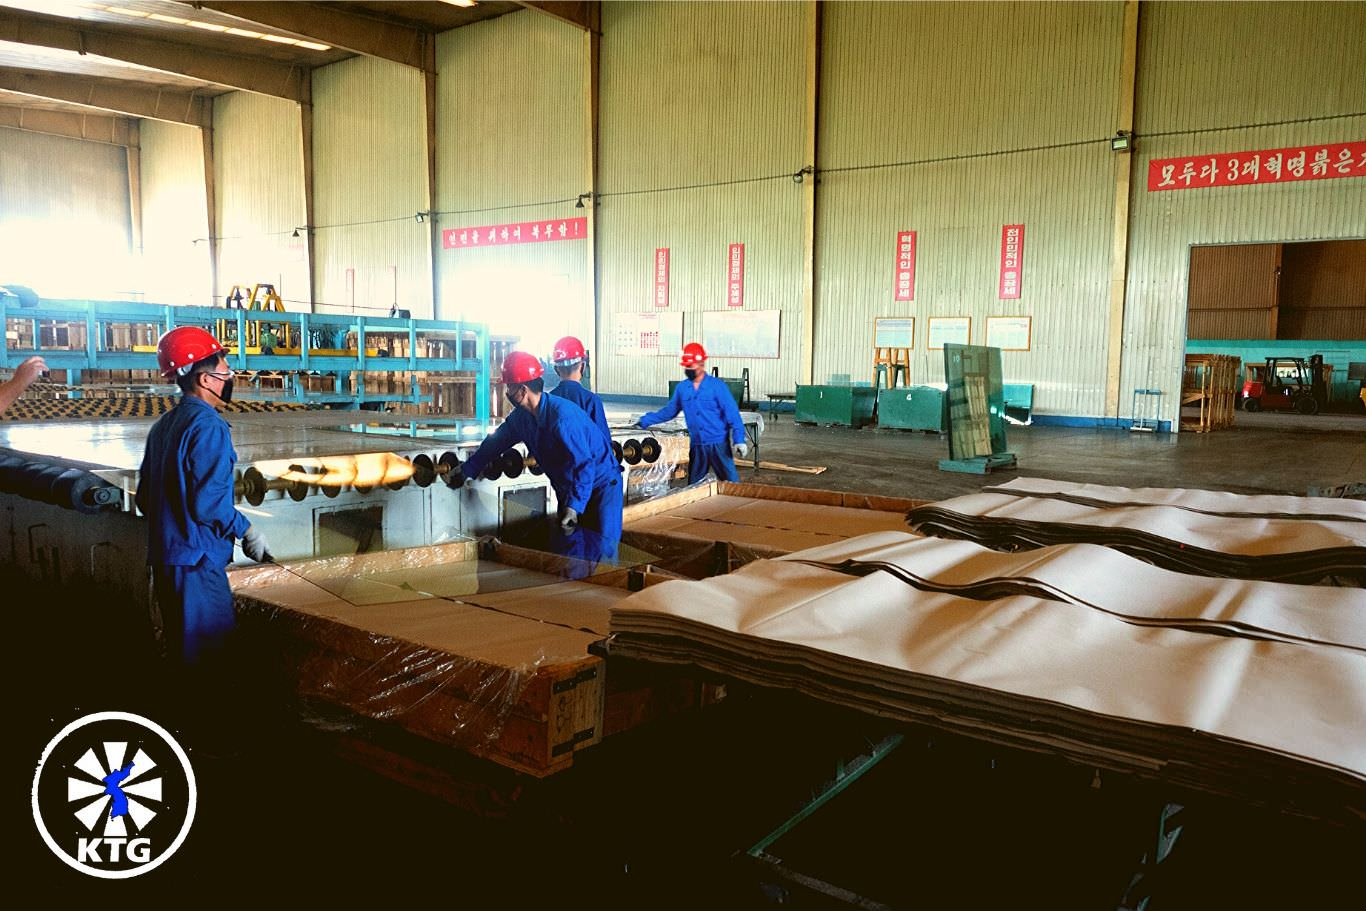 Taen Glass Factory near Nampo city in North Korea. Discover the DPRK with KTG